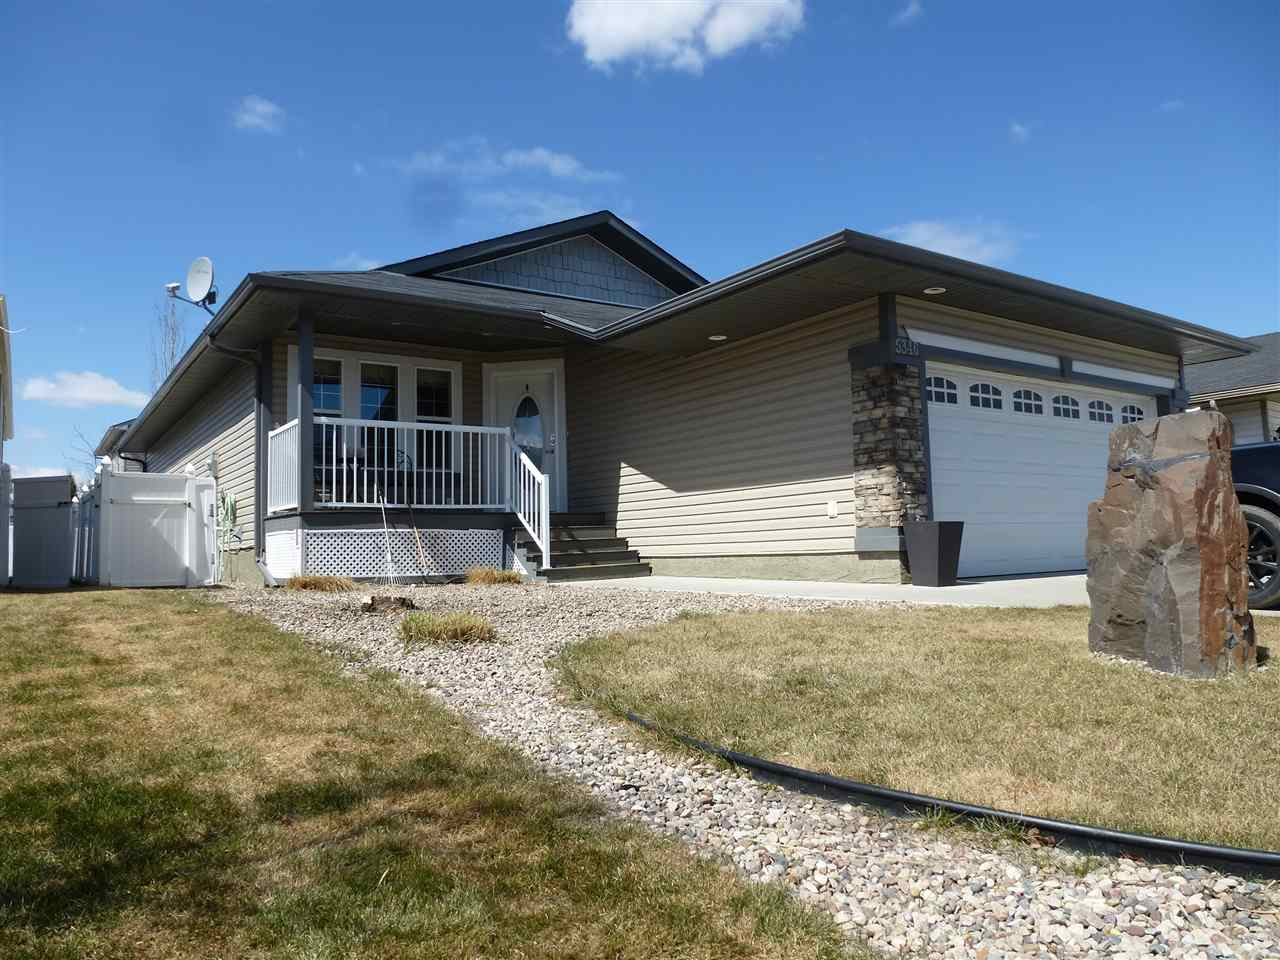 Main Photo: 5346 42 Street: Wetaskiwin House for sale : MLS®# E4120287